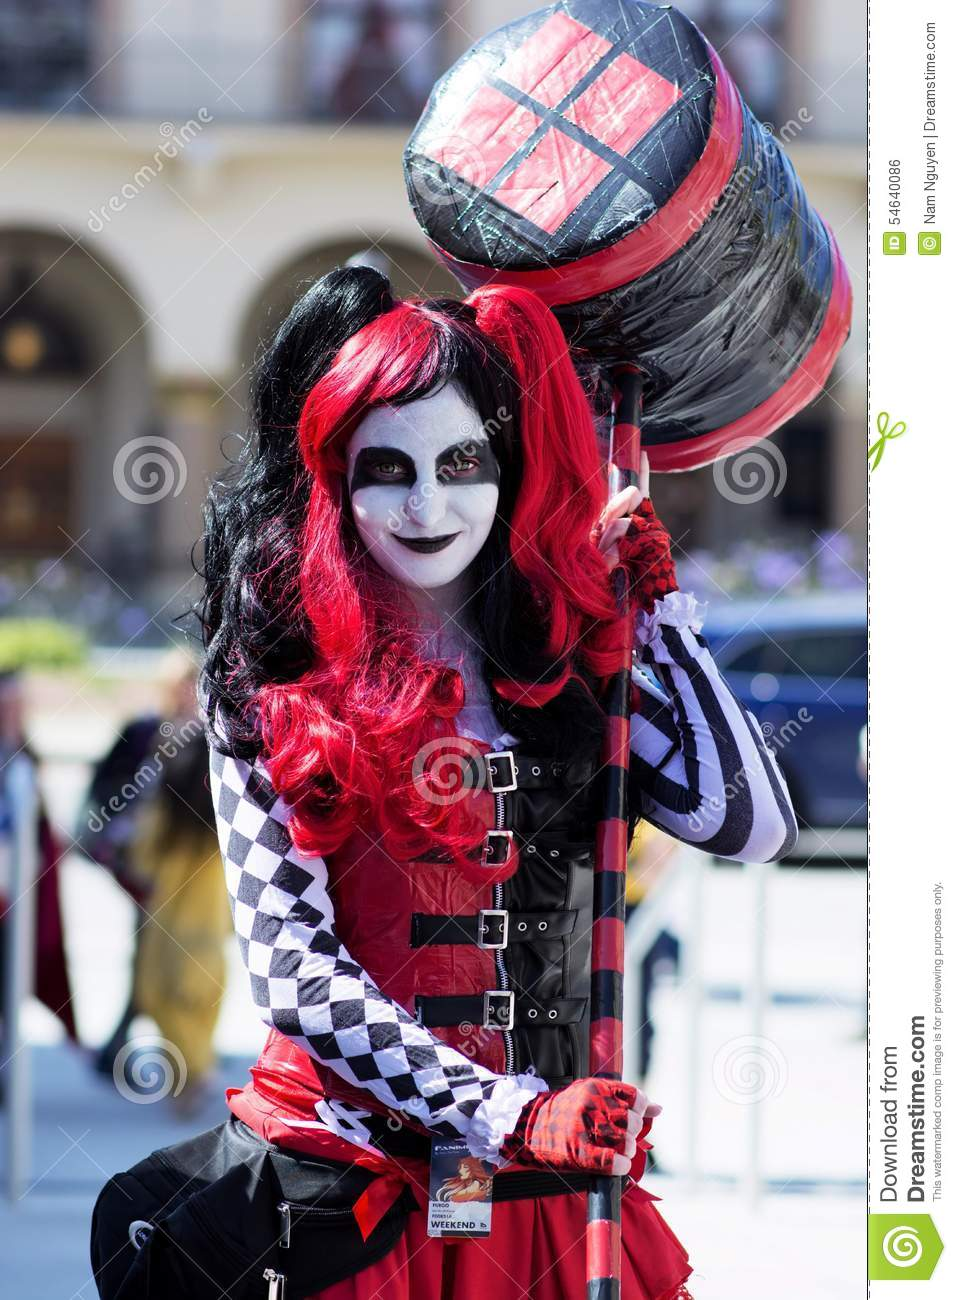 Anime Zombie Girl Wallpaper Harley Quinn Avec Le Marteau Cosplay Photo 233 Ditorial